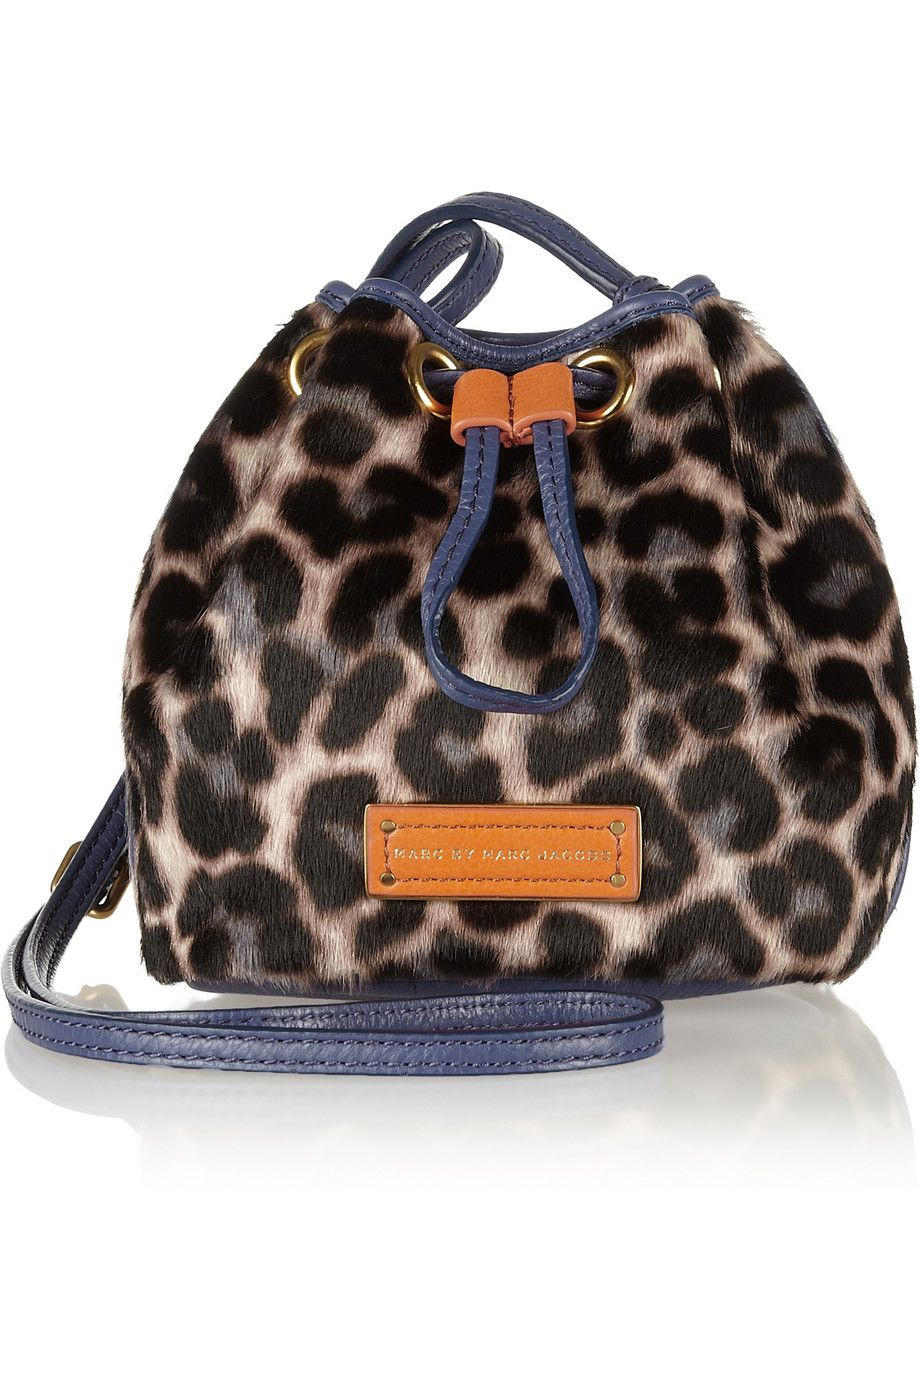 44126efbe4e9 Marc by Marc Jacobs